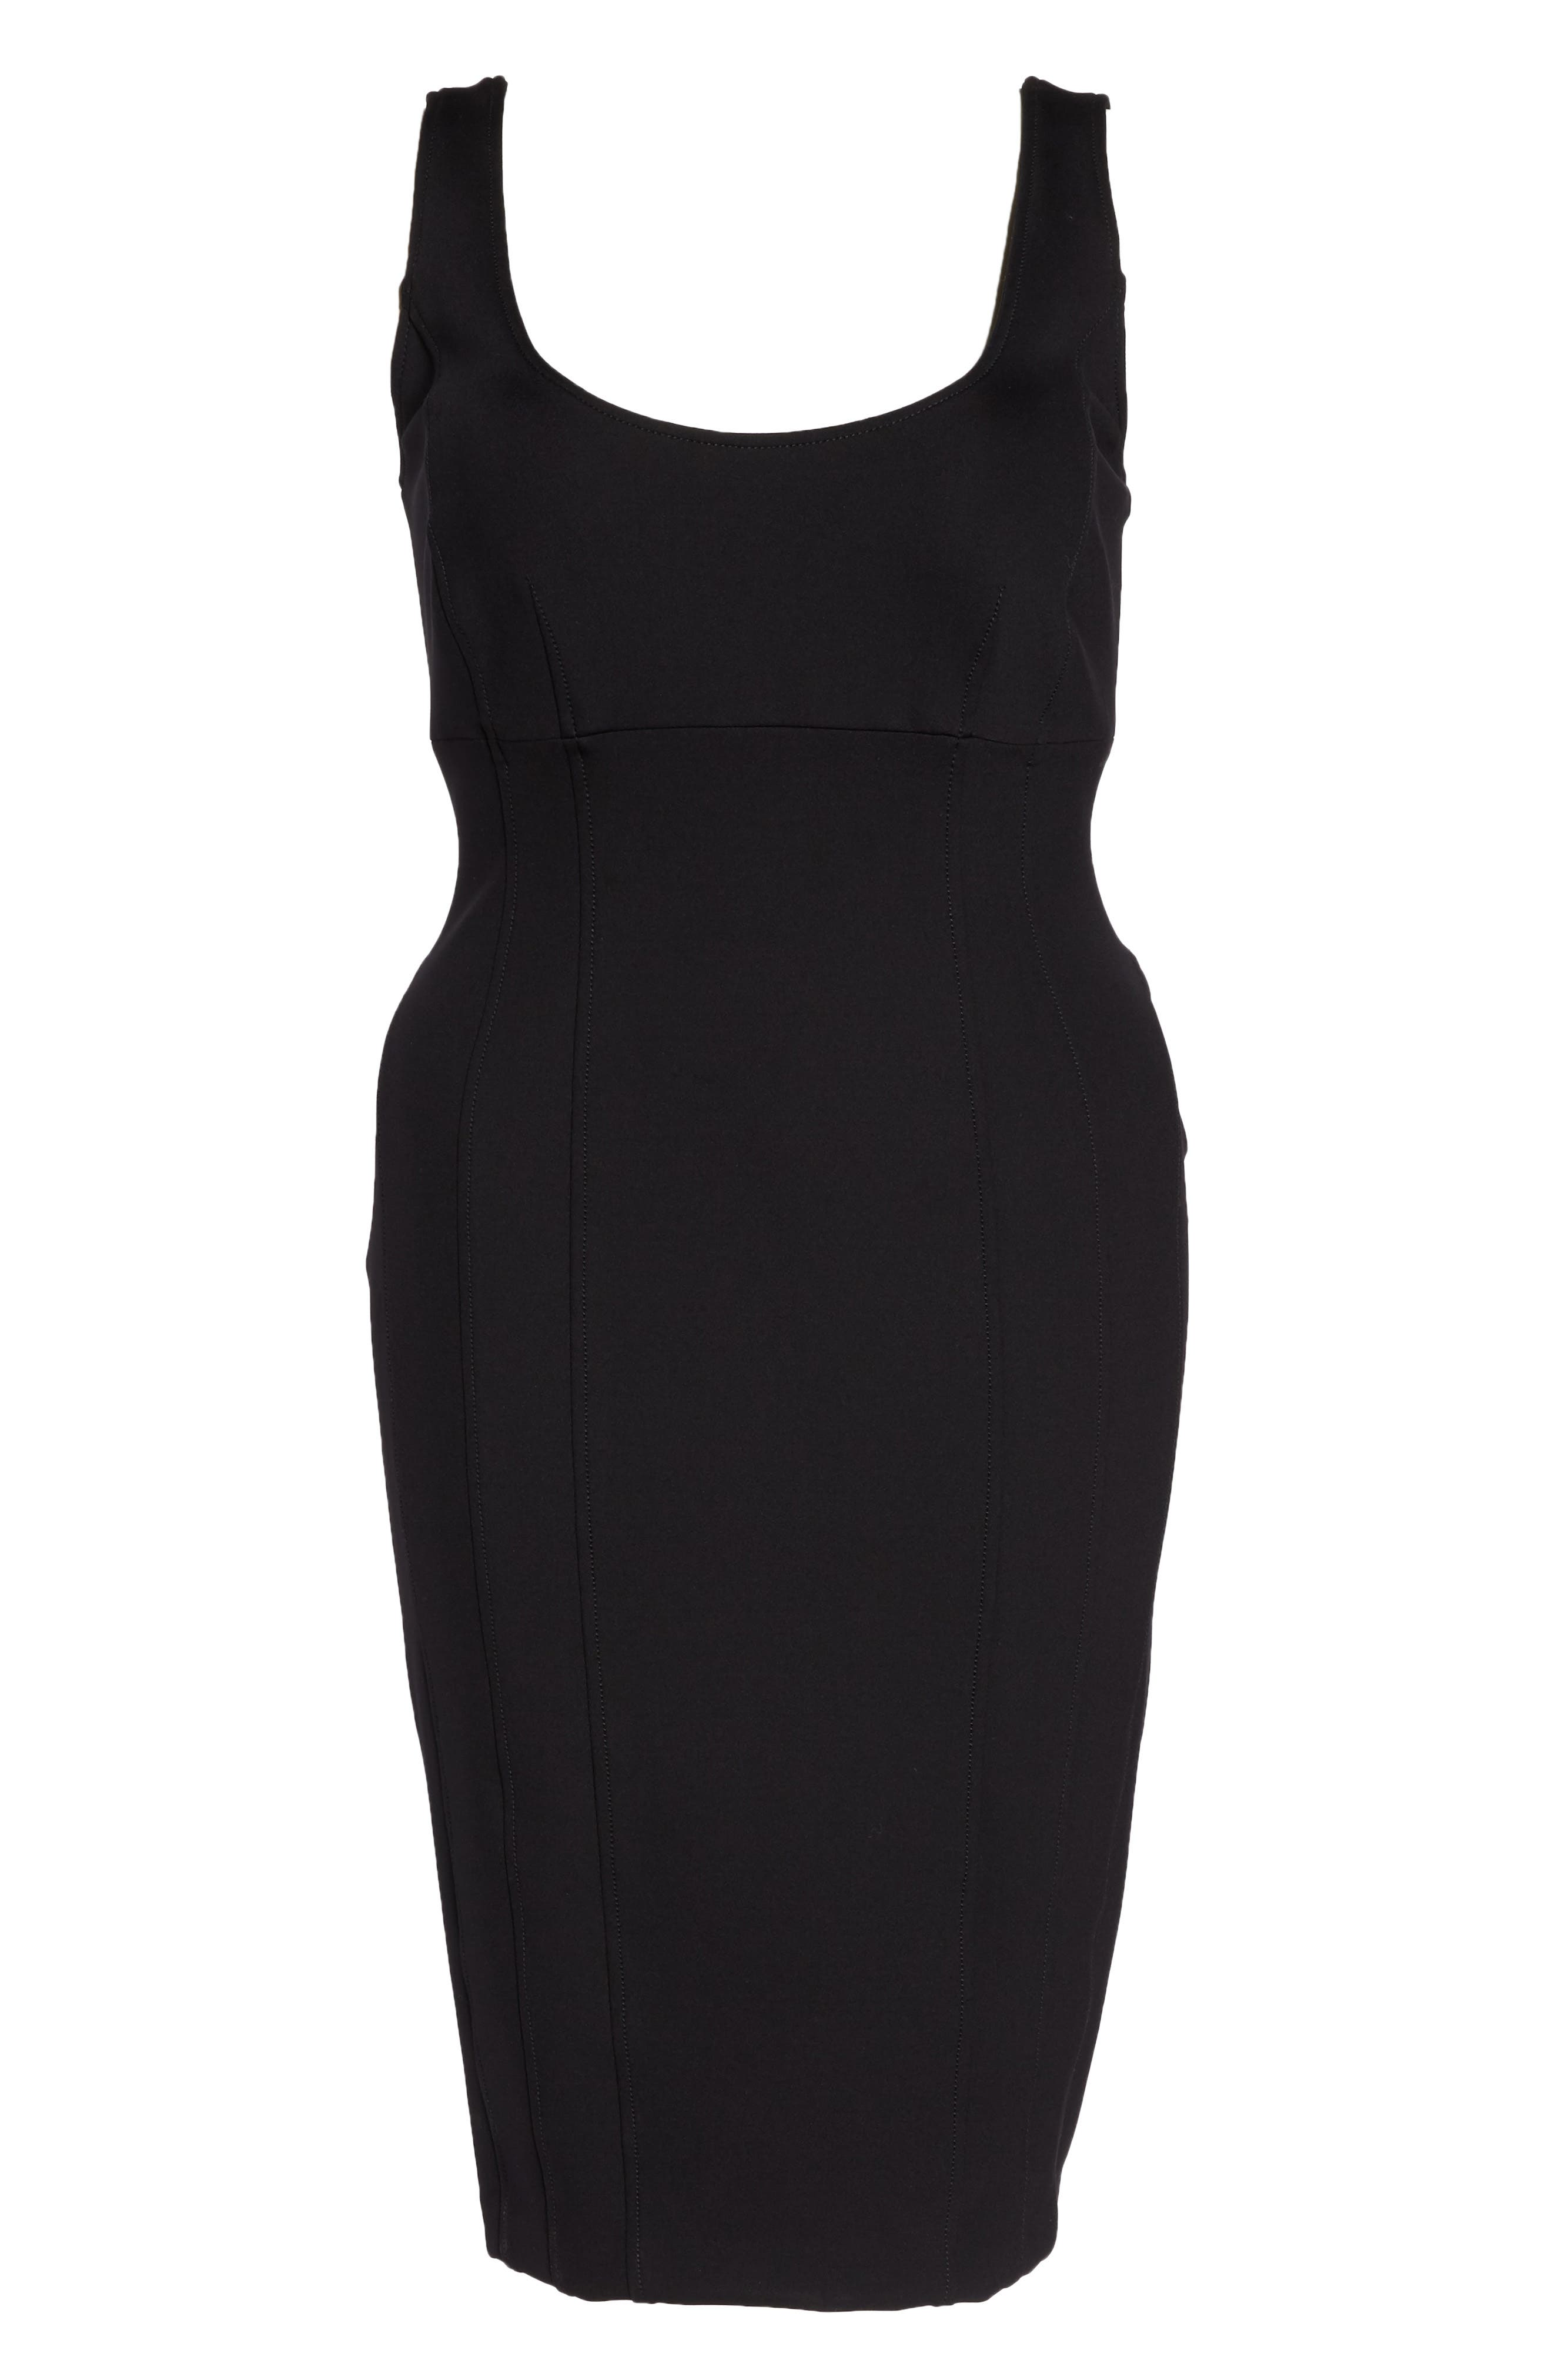 Octopus Jersey Tube Dress,                         Main,                         color, 001